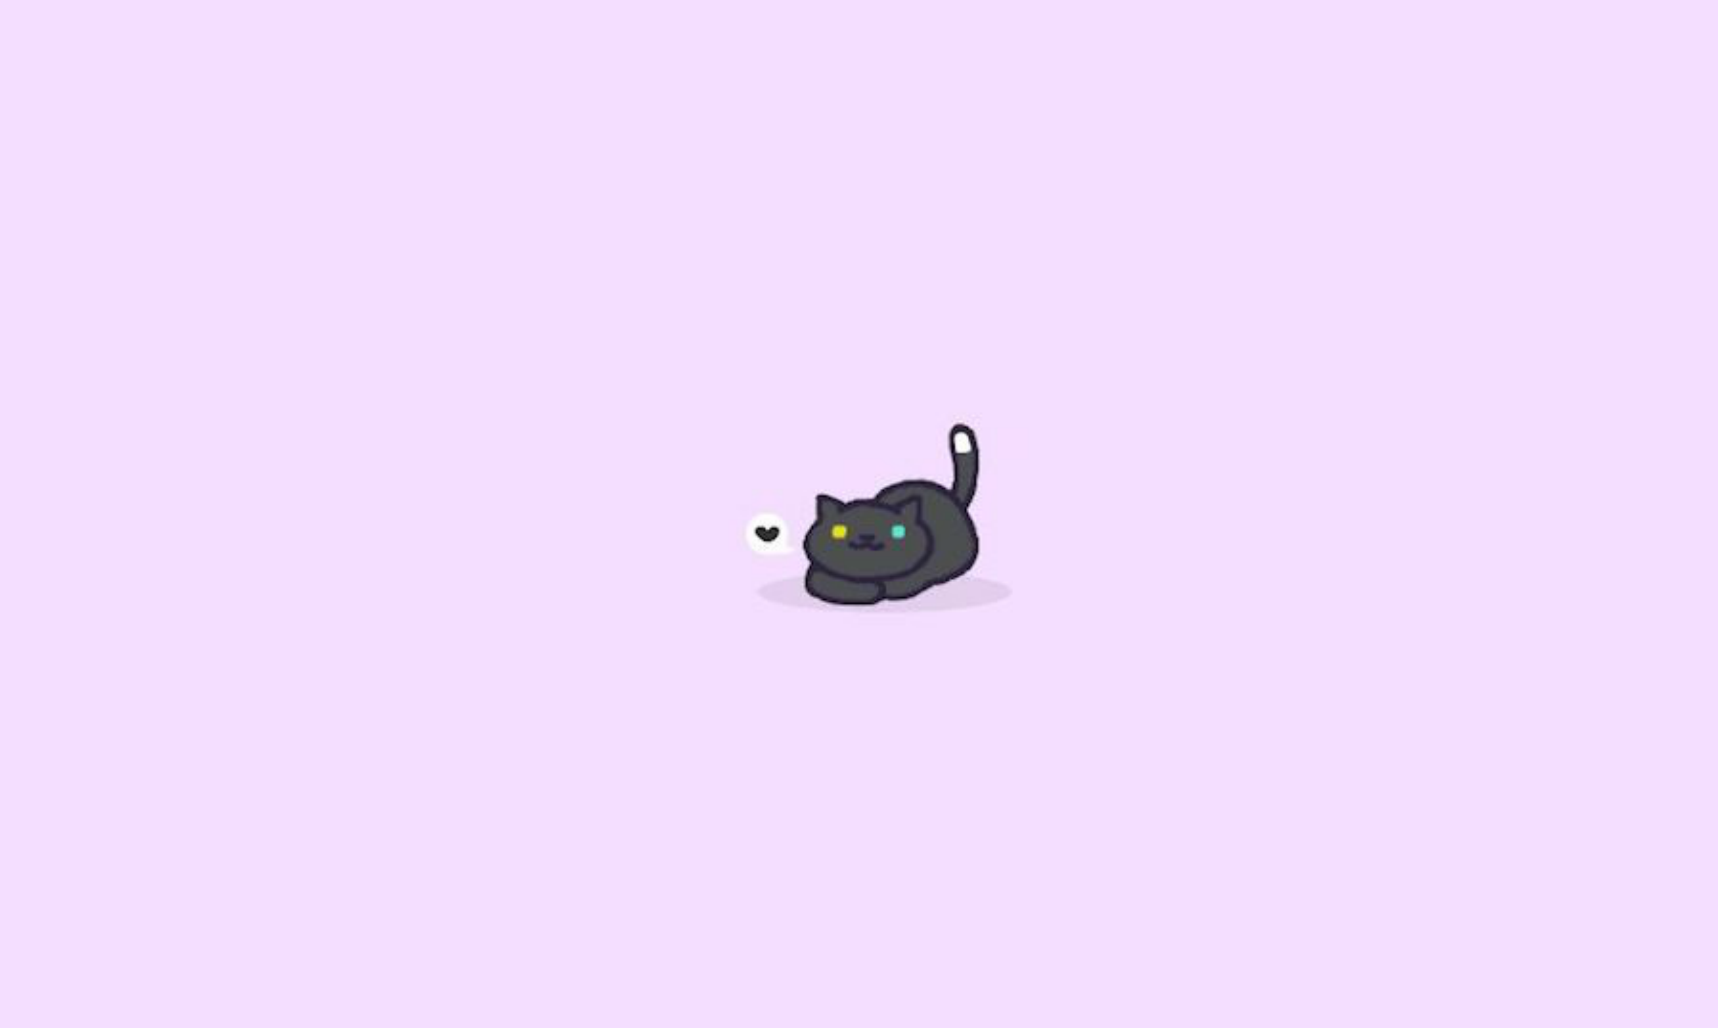 I Needed Some Neko Atsume Wallpapers For My Laptop So I